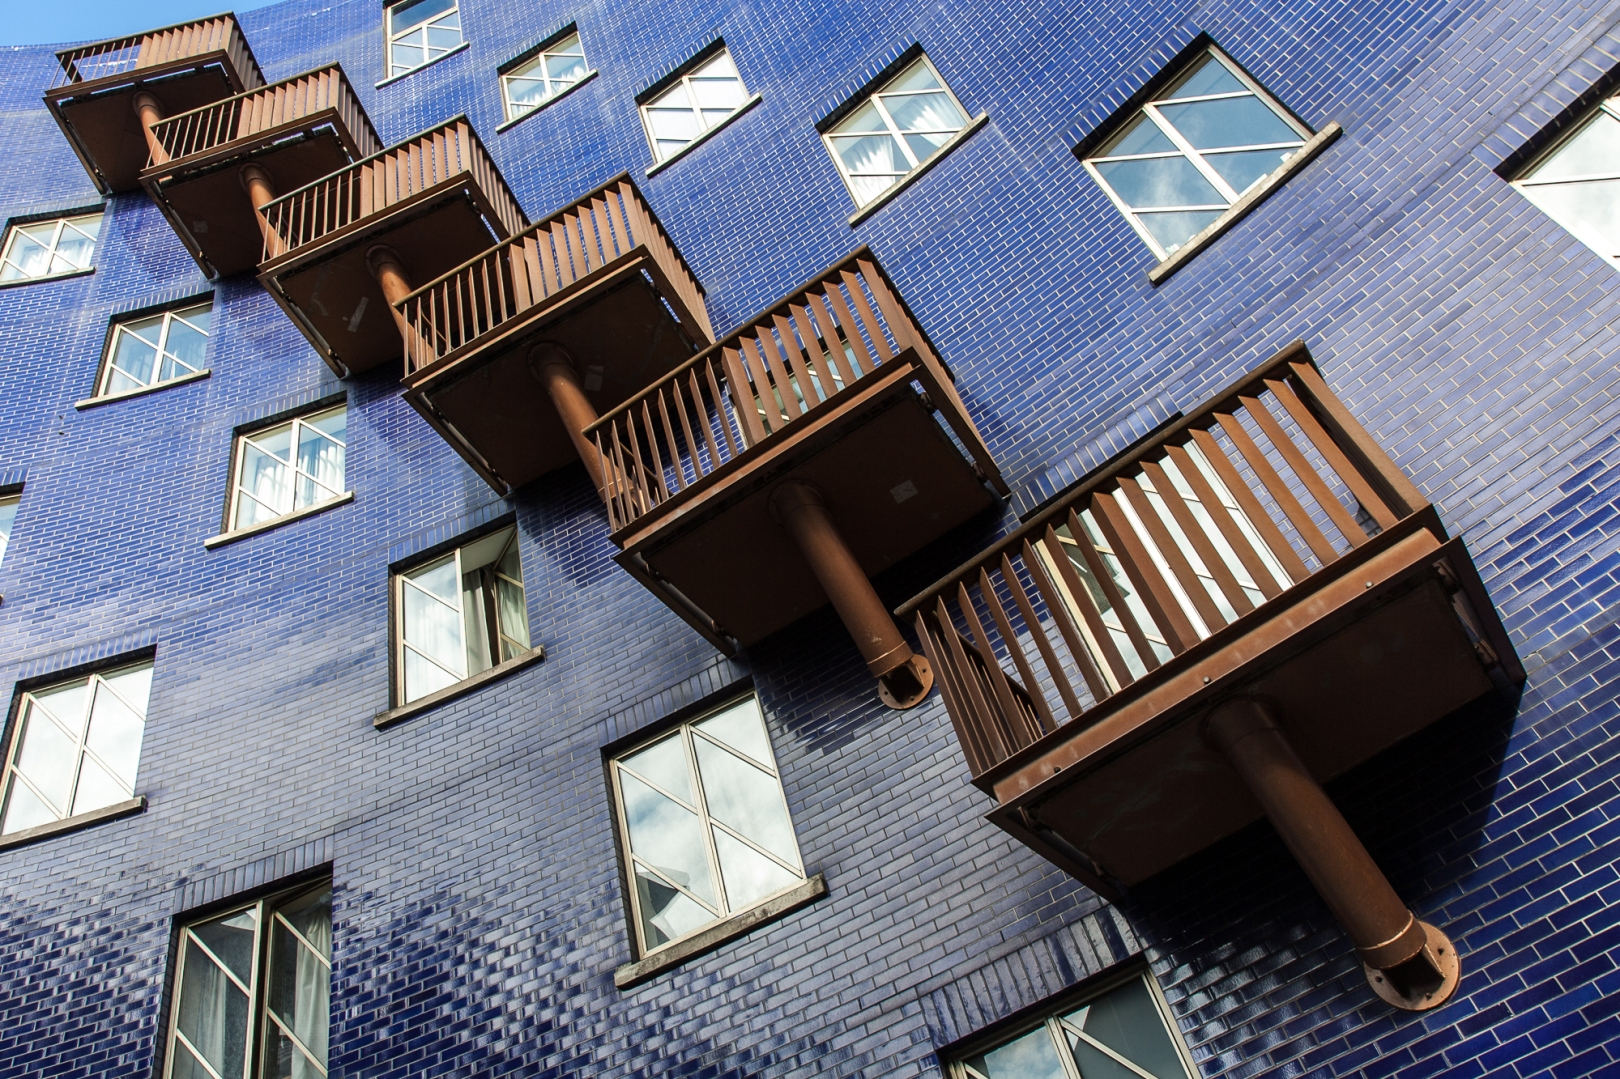 Balconies near The Circle, Bermondsey, London. Canon 40D + 17-55mm f2.8 IS